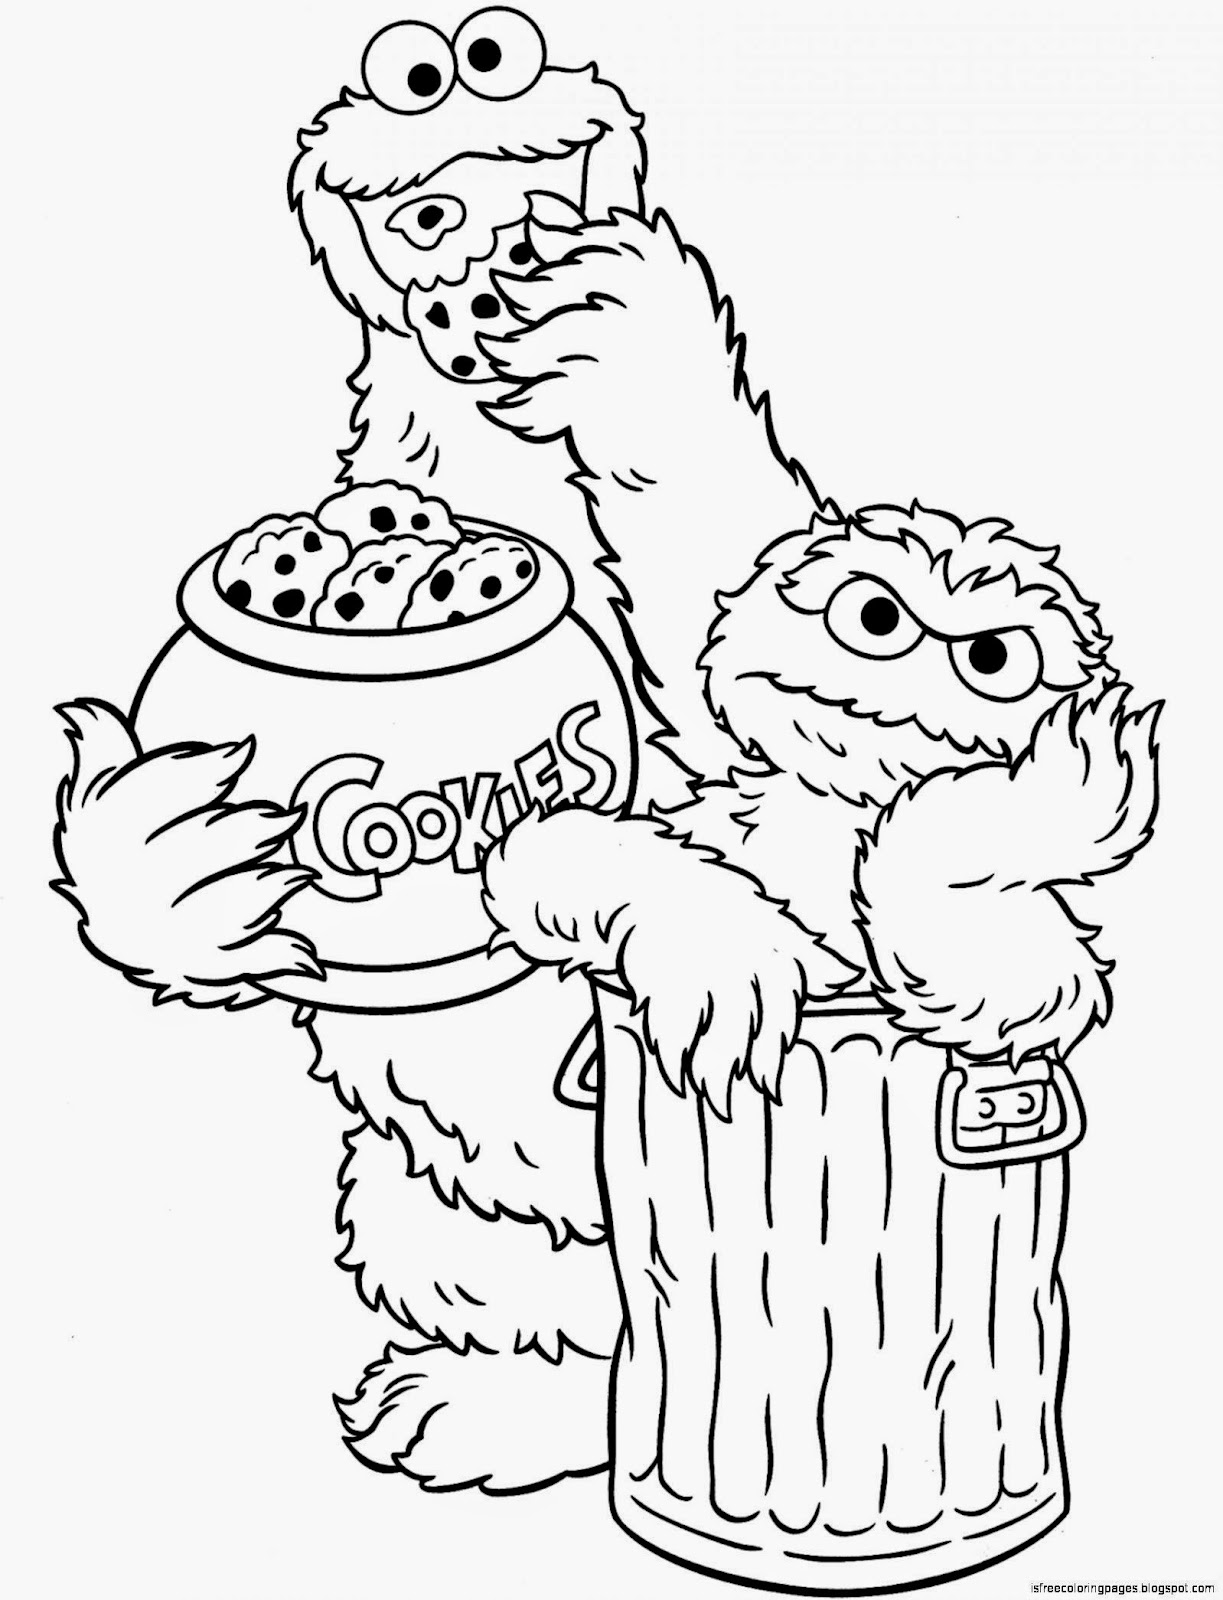 sesame street holiday coloring pages - photo#9